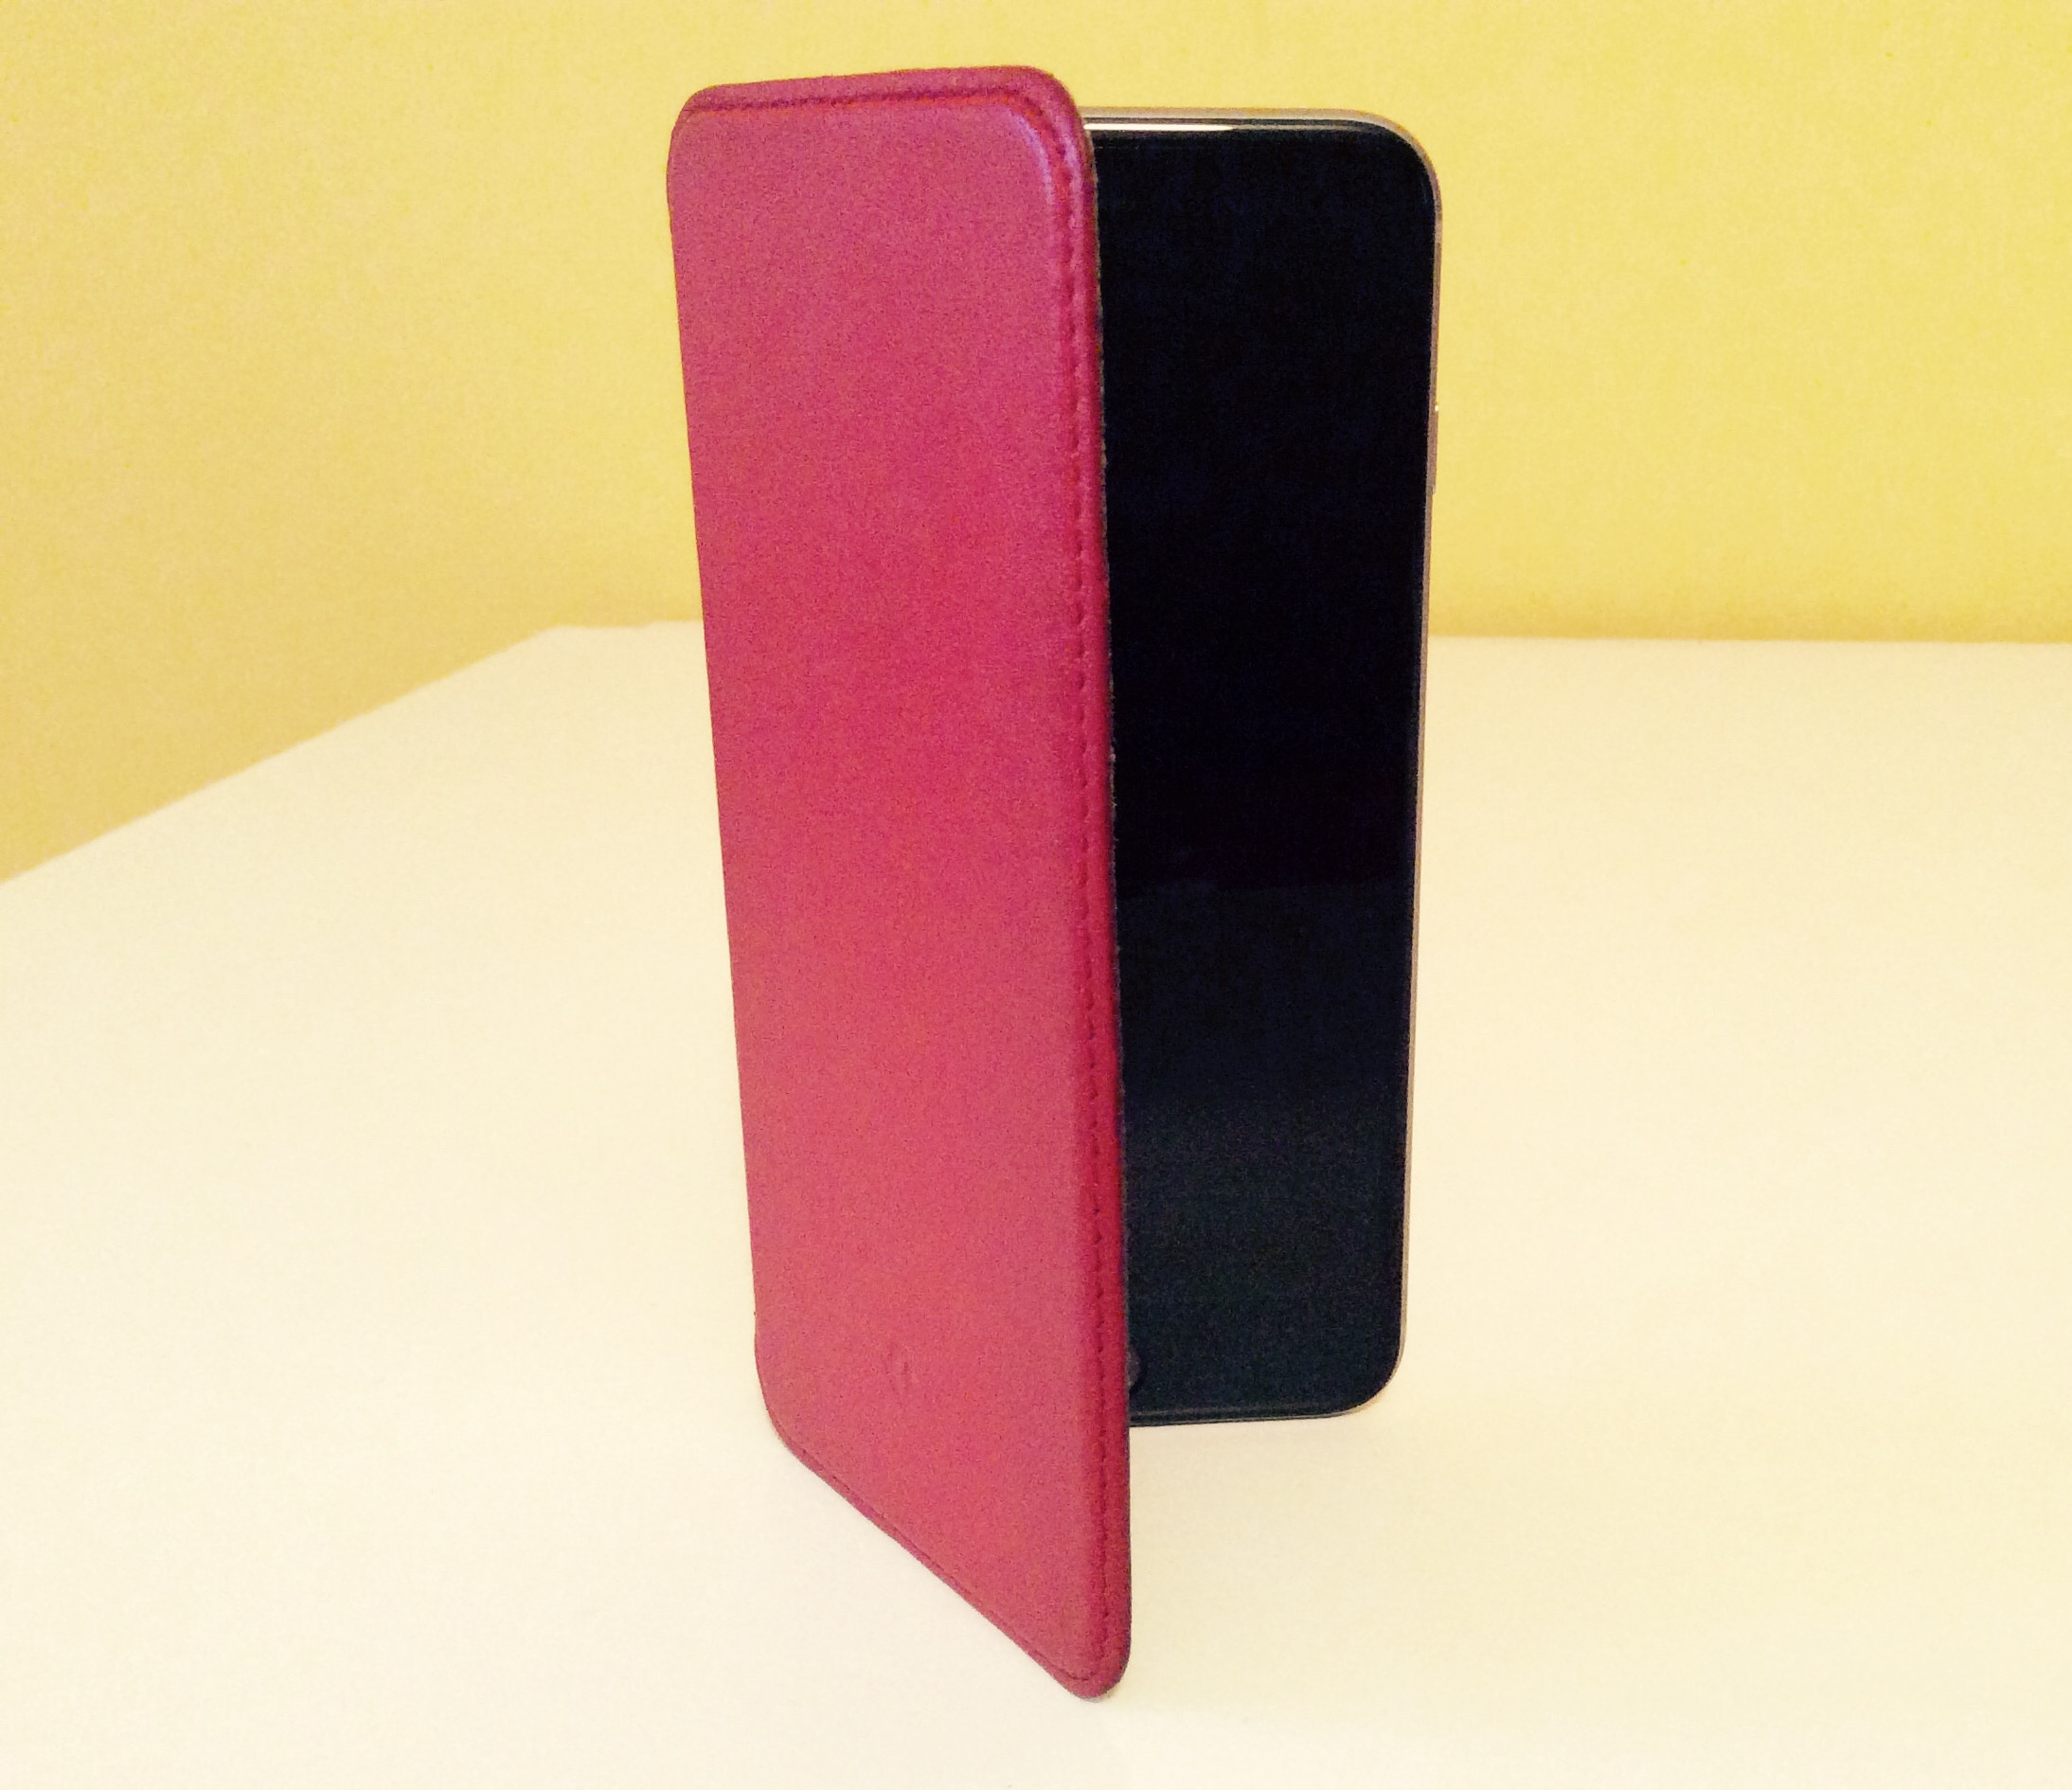 Twelve South SurfacePad for iPhone 6 Plus image 00009